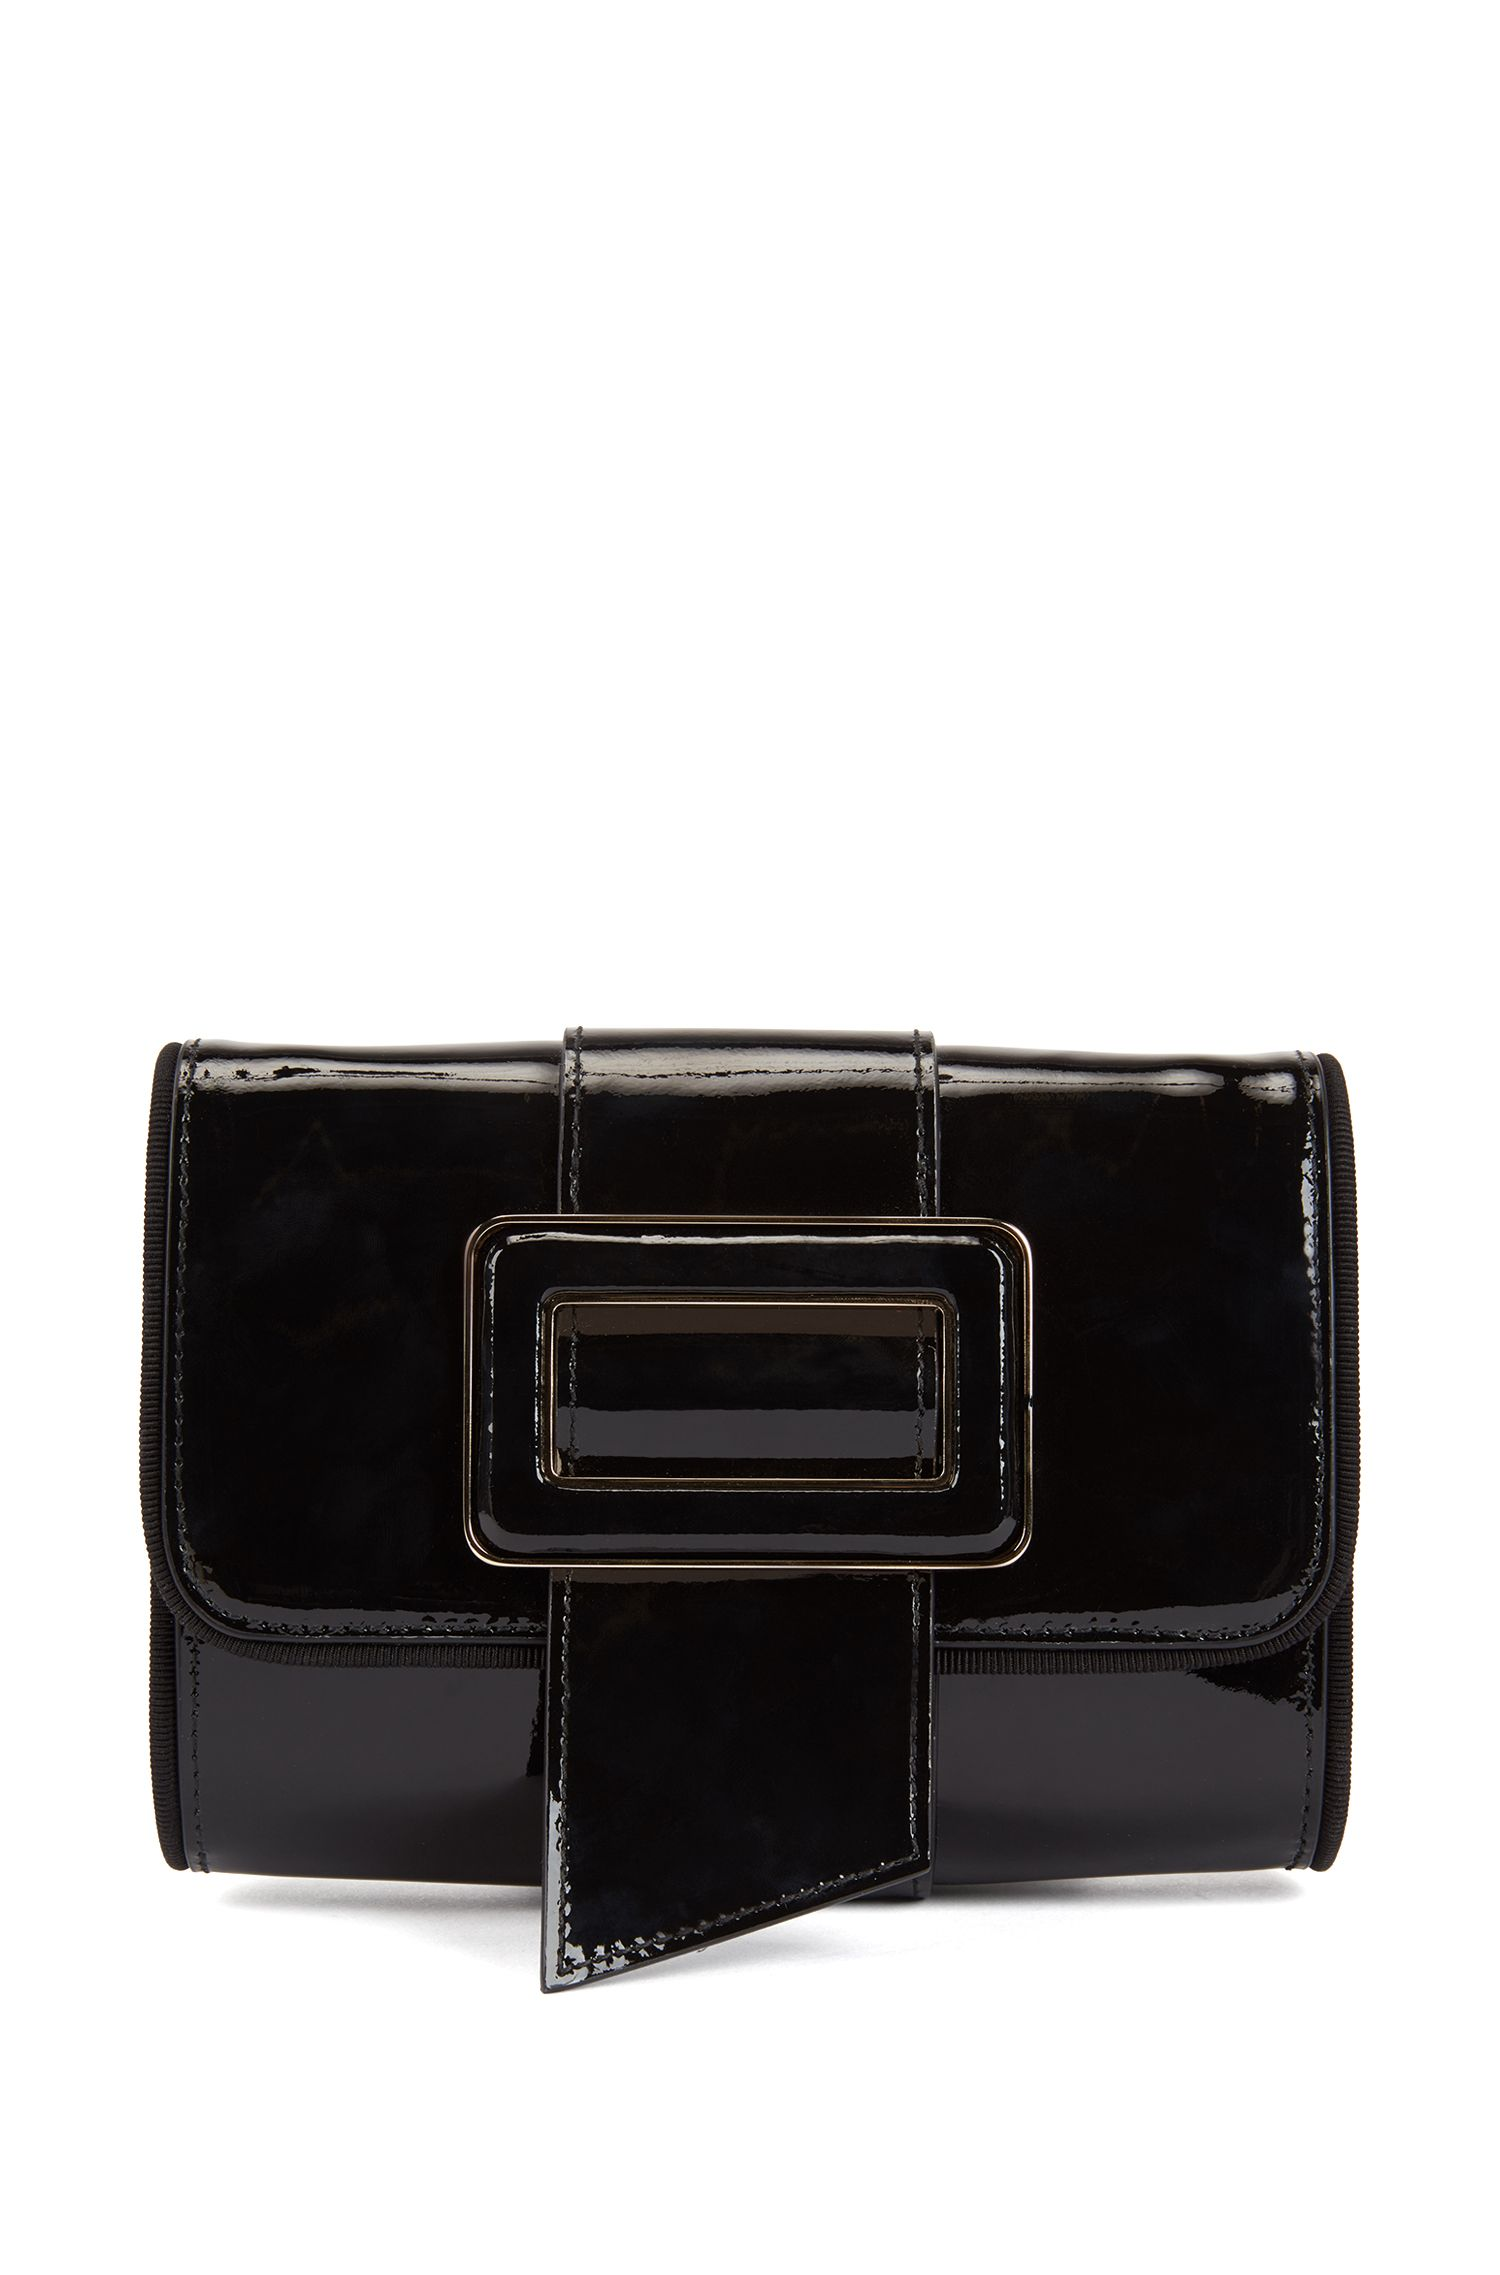 Patent-leather mini bag with statement buckle, Black